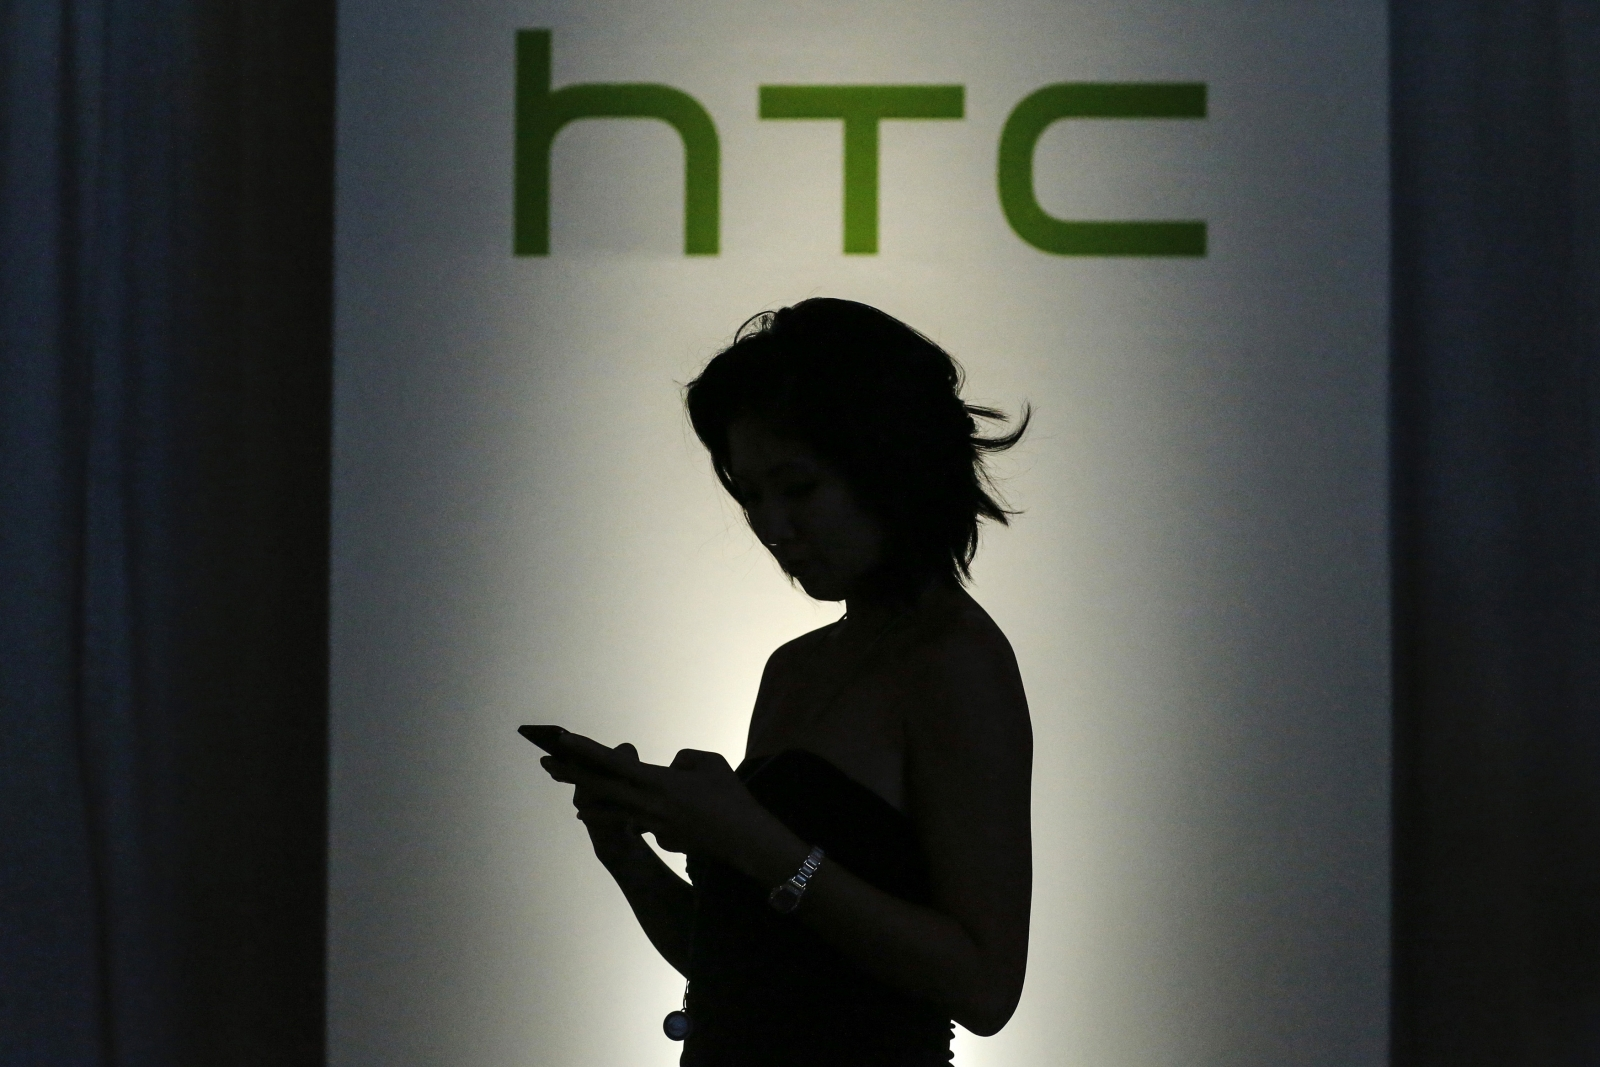 Death of HTC